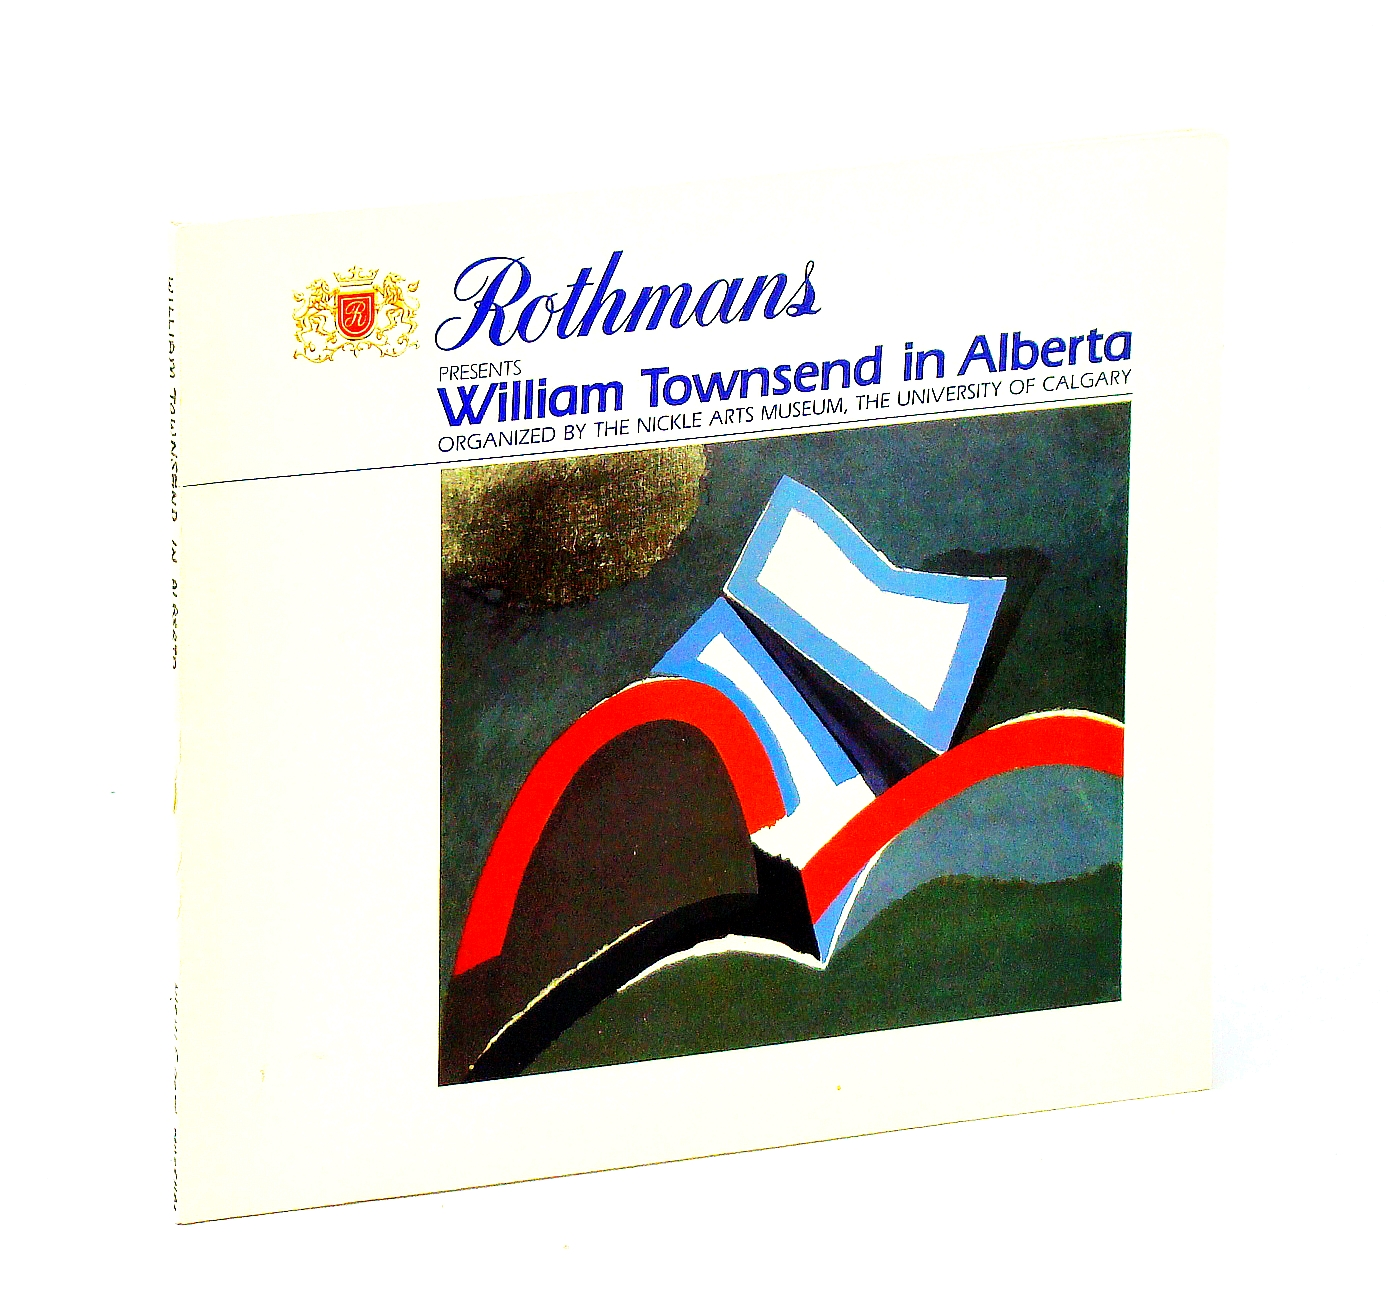 Image for William Townsend in Alberta: Exhibition Catalogue